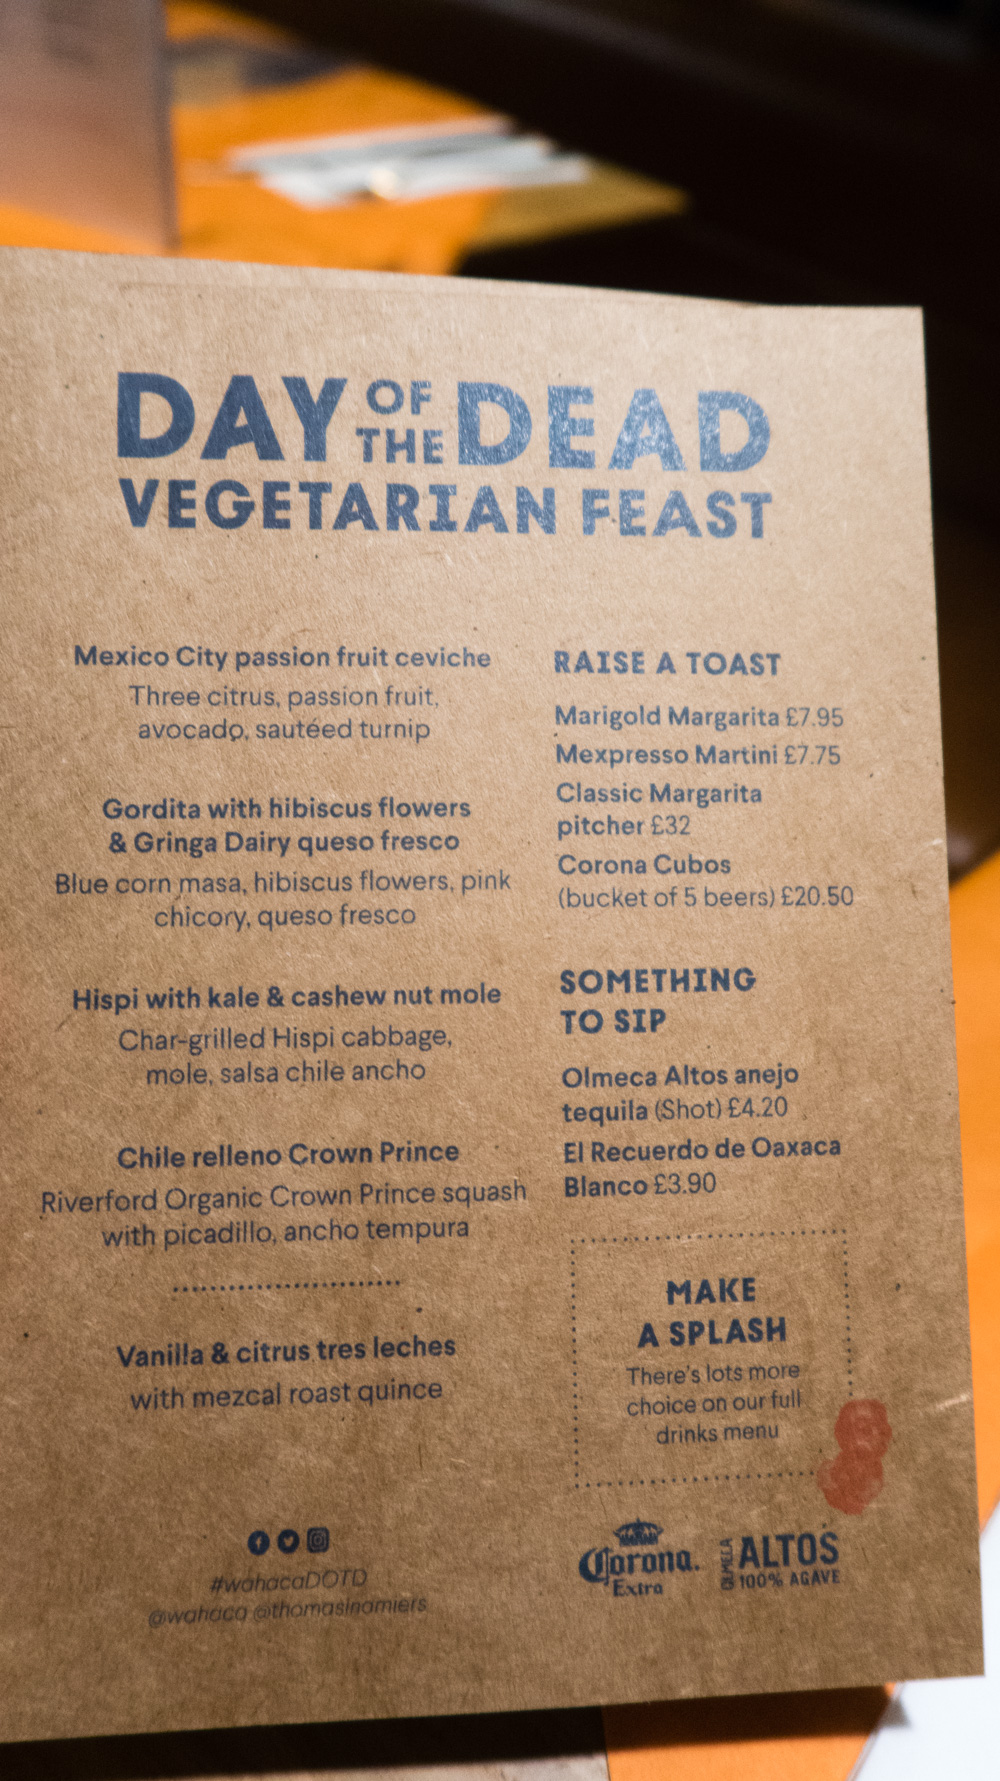 Day of the Dead Feast vegetarian menu